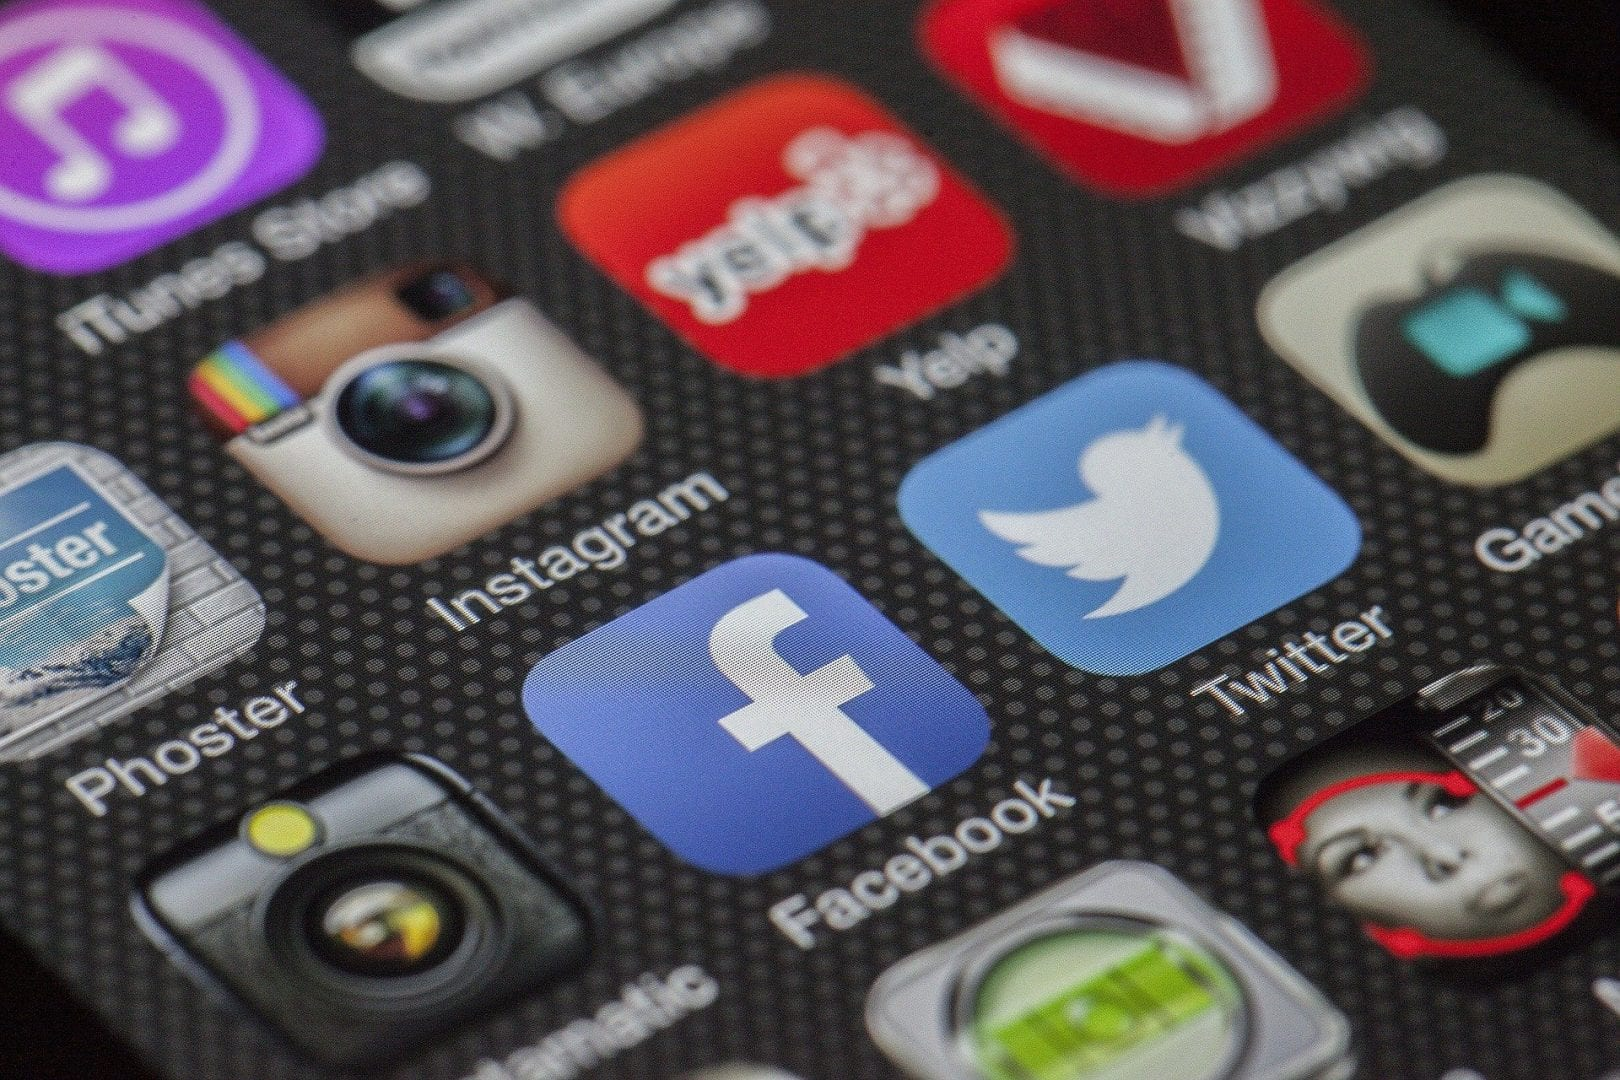 close up of a phone screen displaying a variety of apps including, Facebook, Twitter, and Instagram